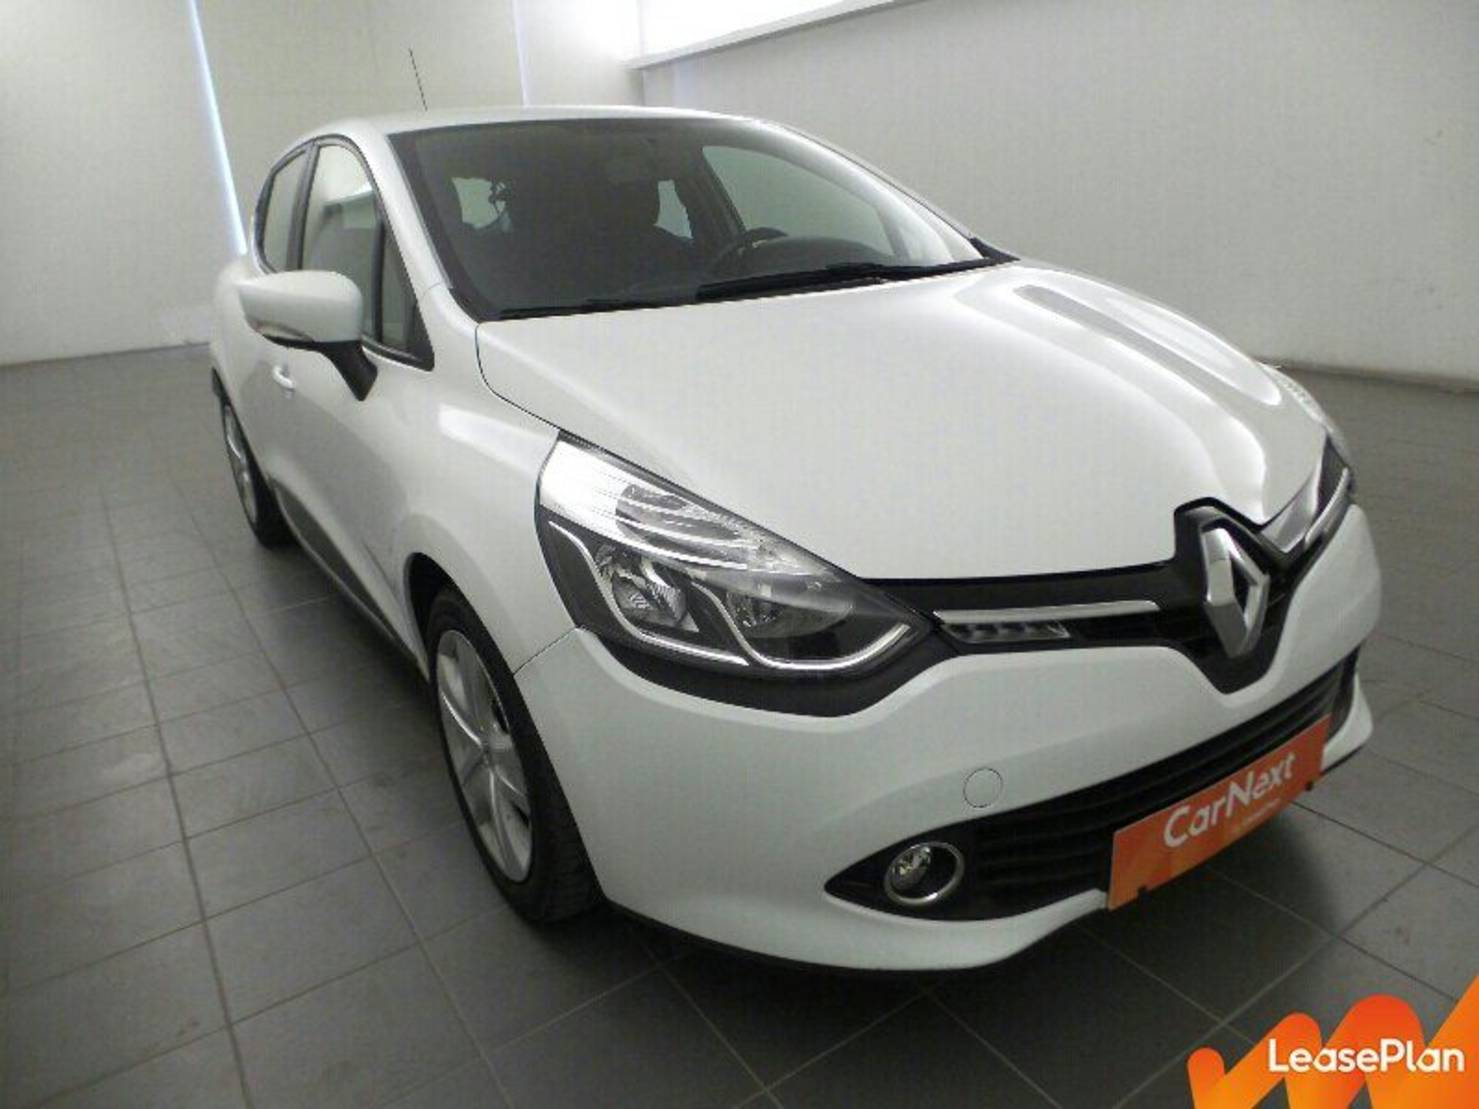 Renault Clio IV dCi 90 Business Energy 82g eco2 detail2